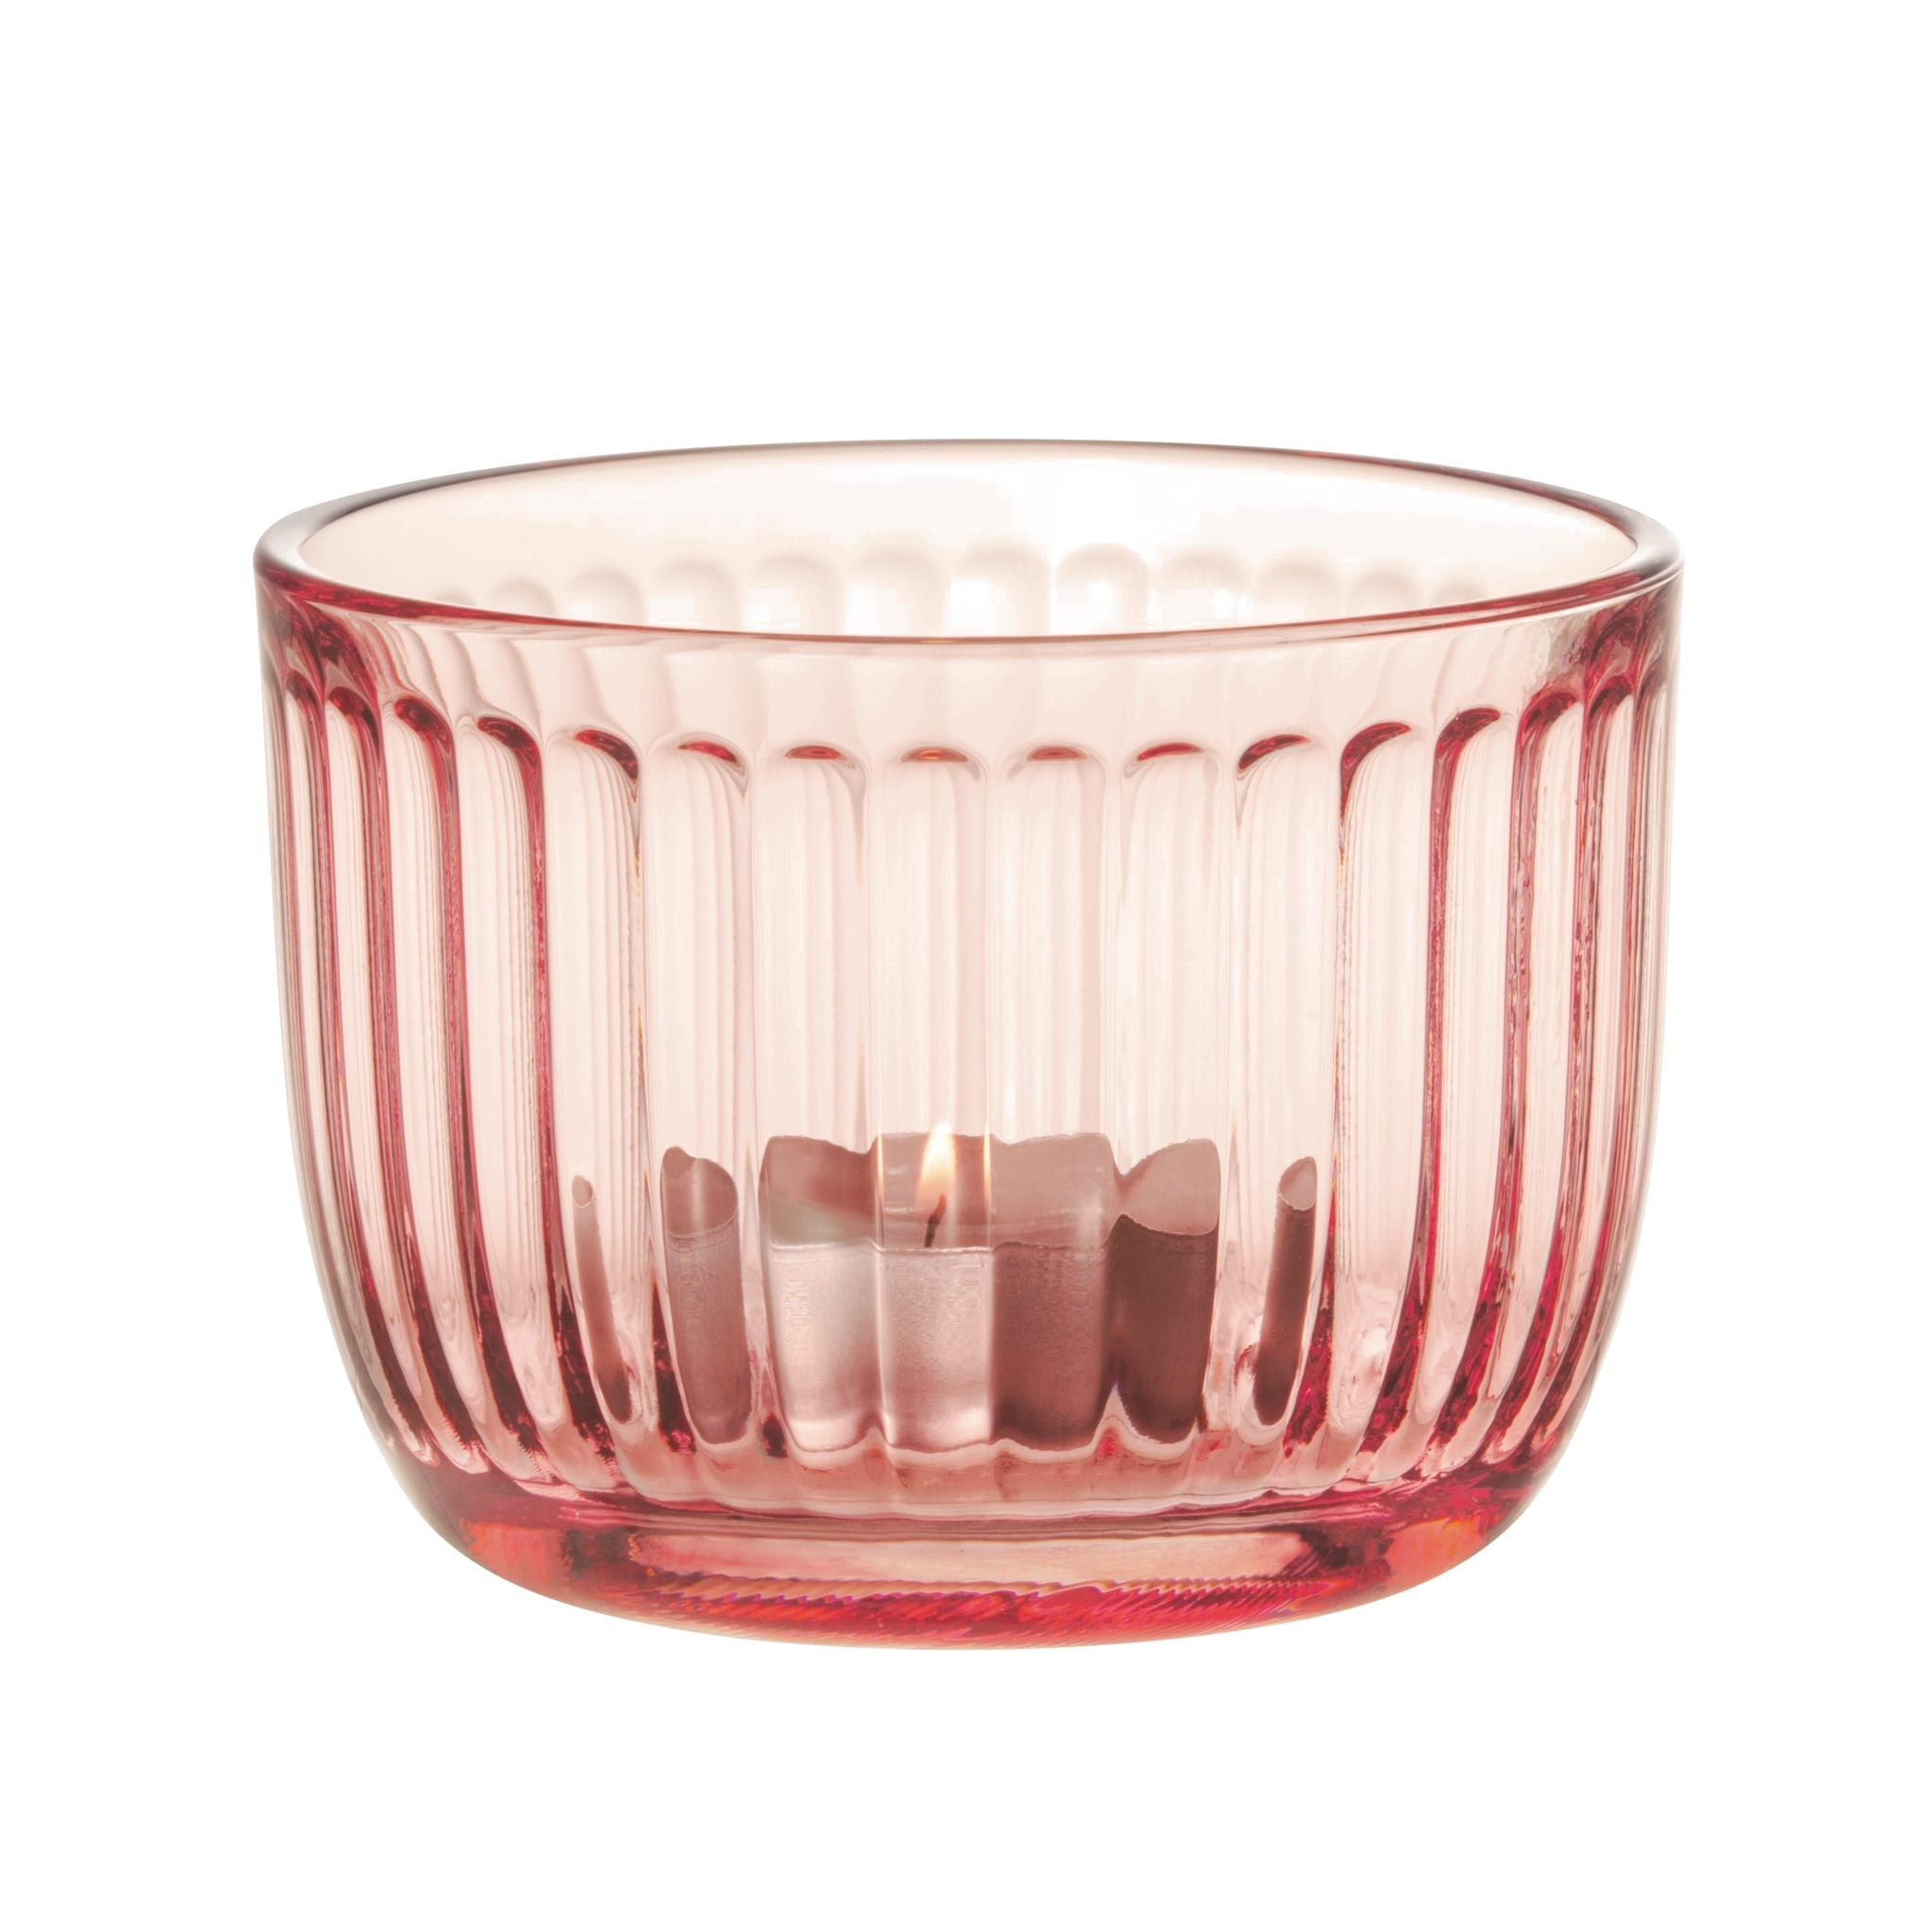 Raami Tealight Holder by Iittala